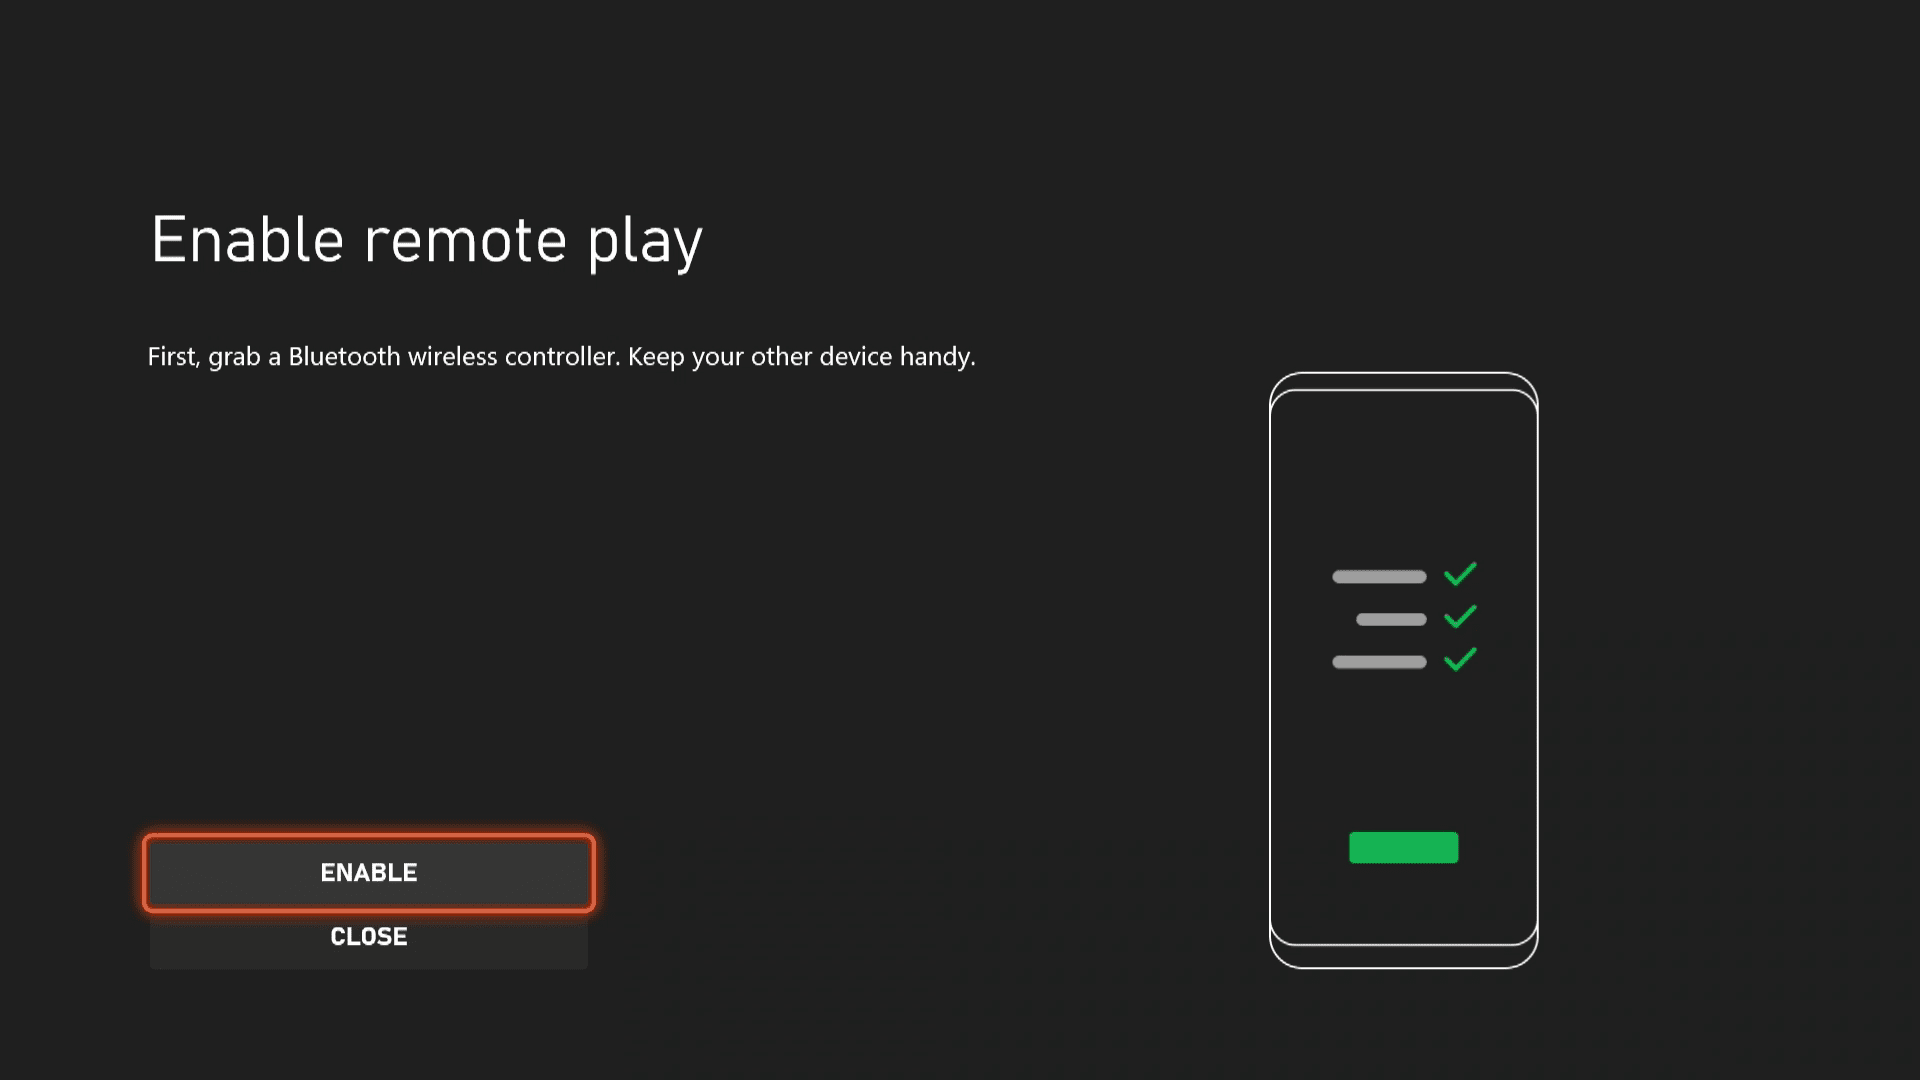 Enabling remote play on an Xbox Series X S.